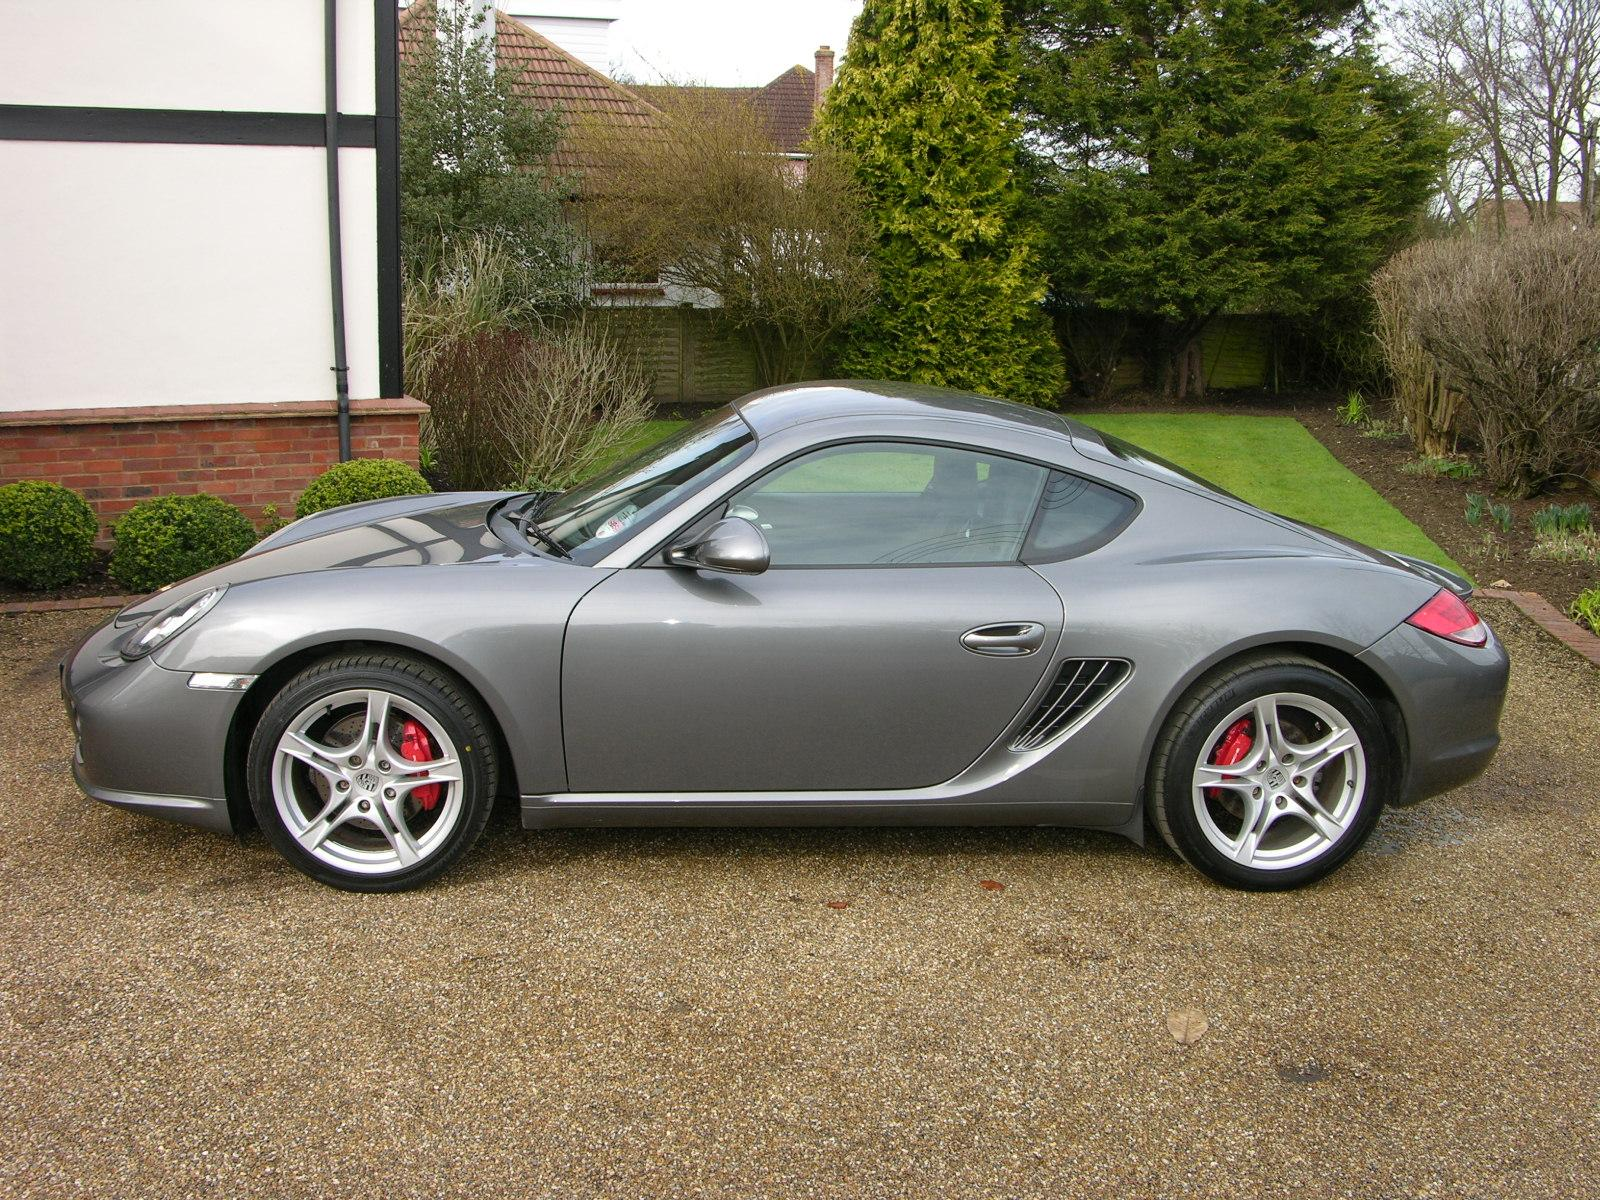 File:2009 Porsche Cayman S - Flickr - The Car Spy (23).